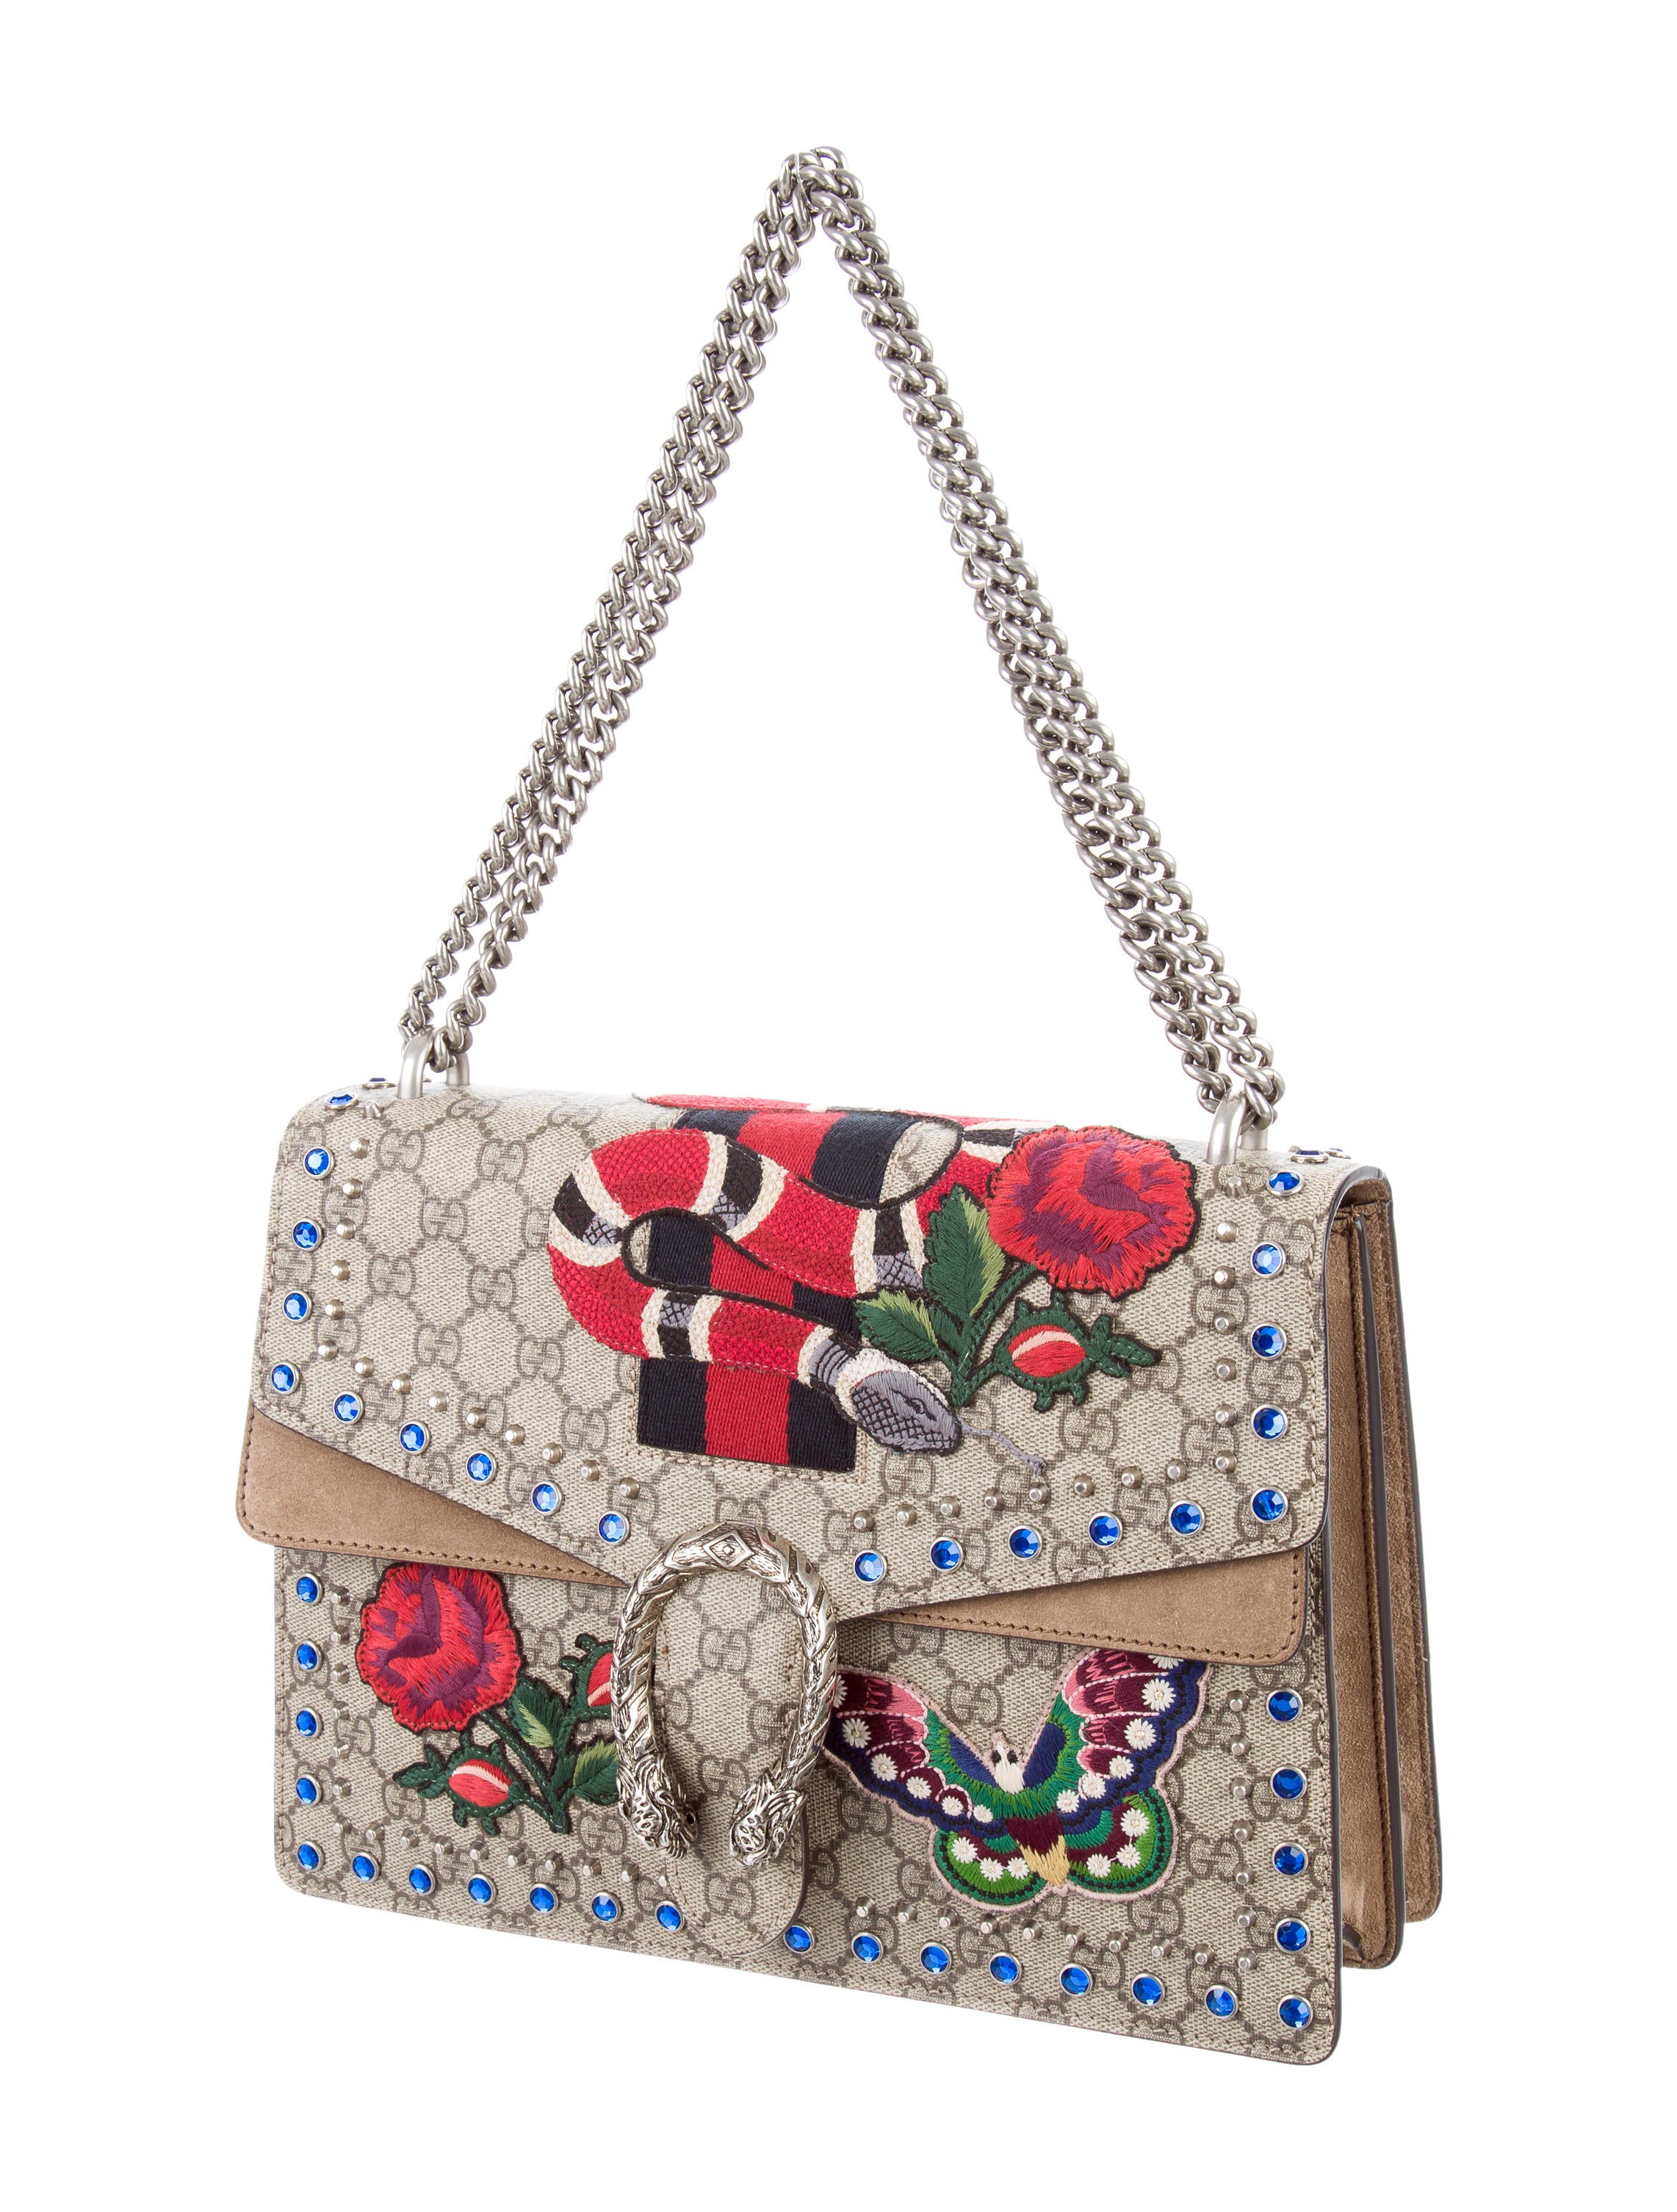 ab3536a76f07cc Gucci Bag London Sale | Stanford Center for Opportunity Policy in ...